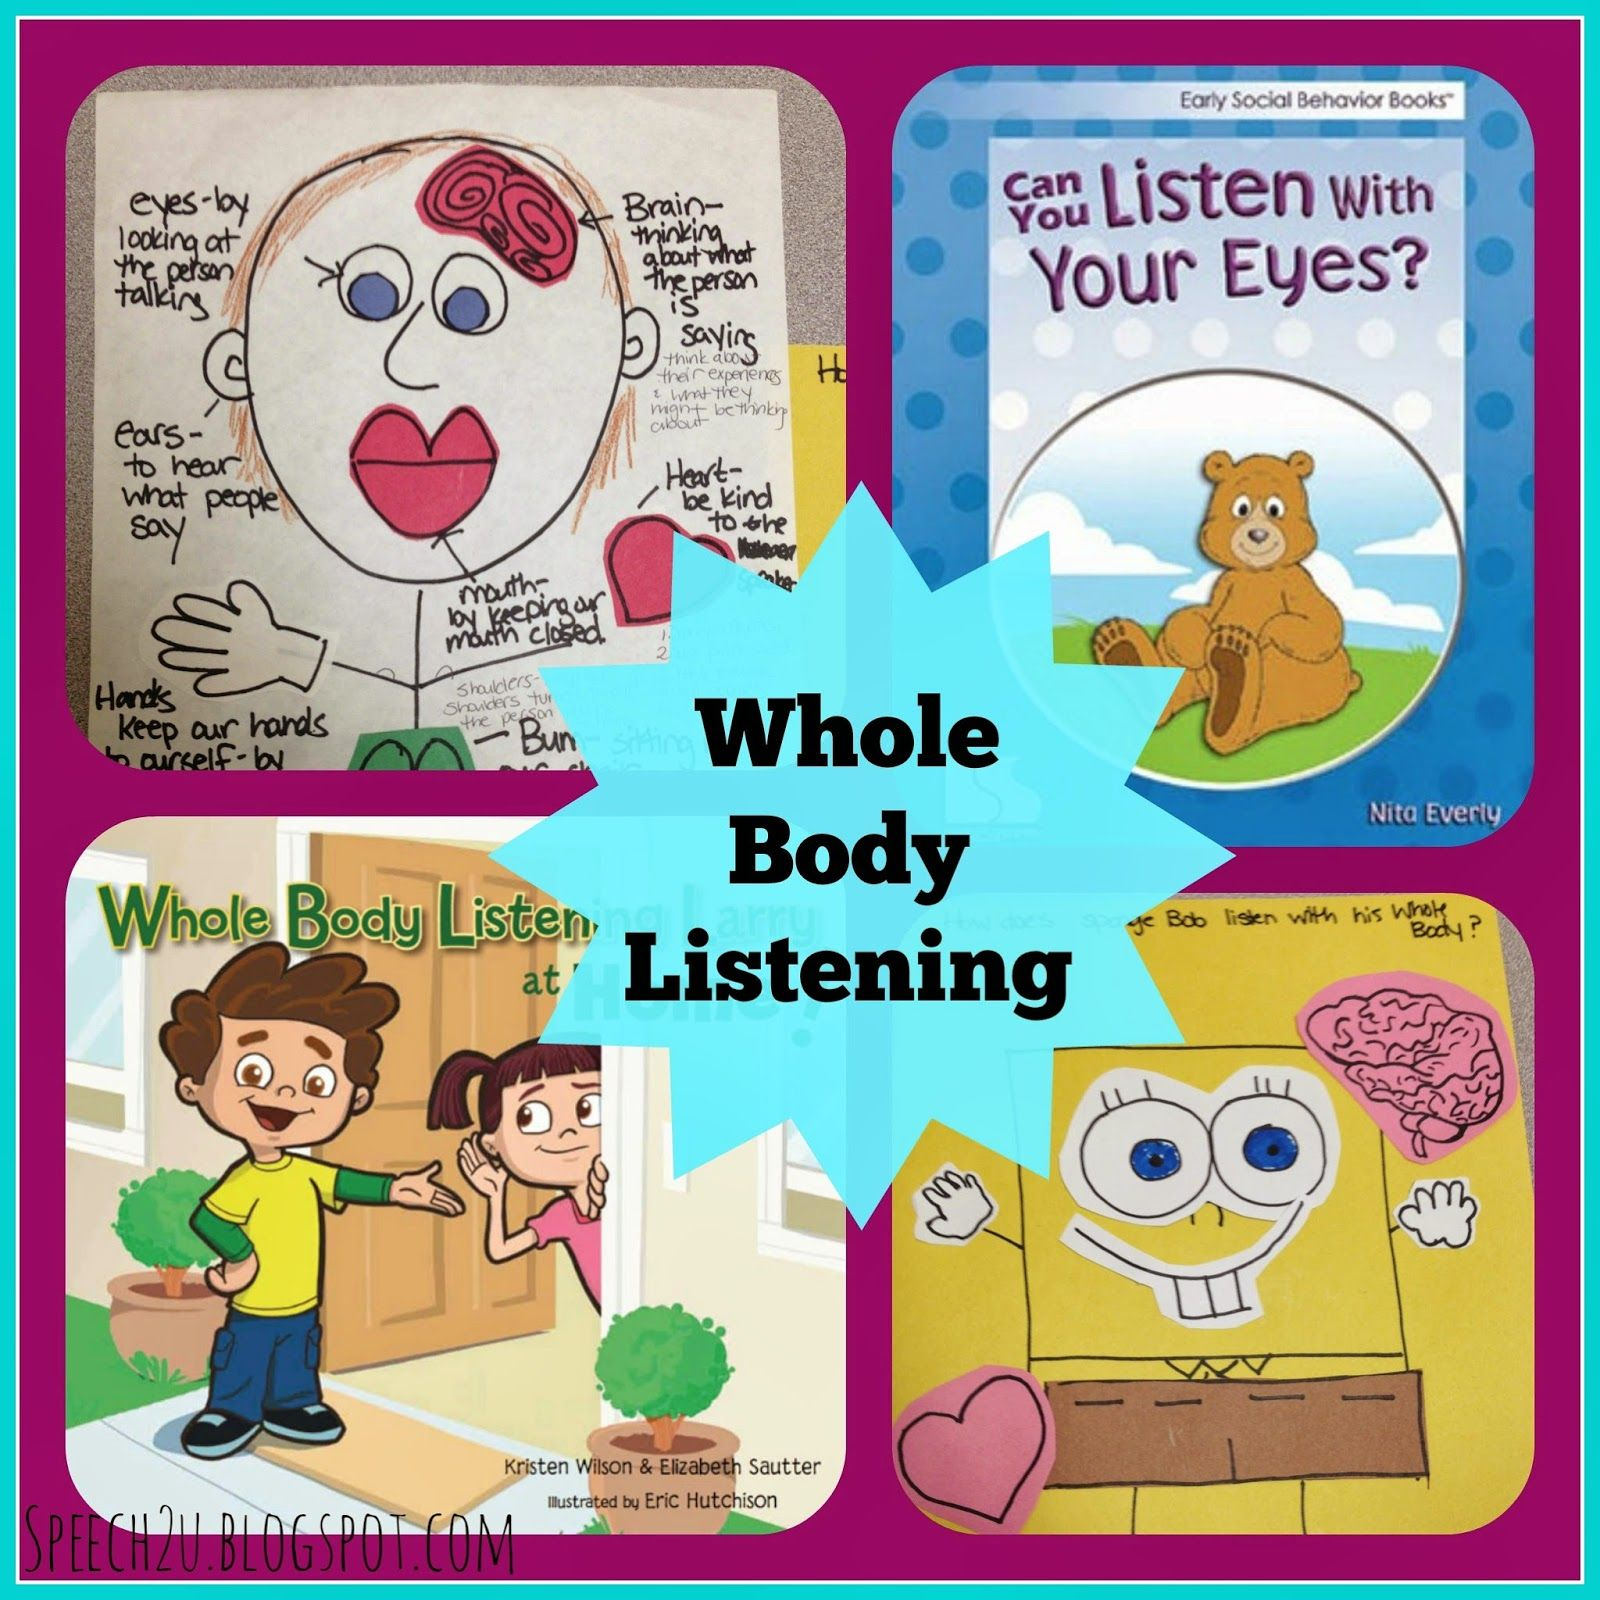 Whole Body Listening Sponge Bob Style